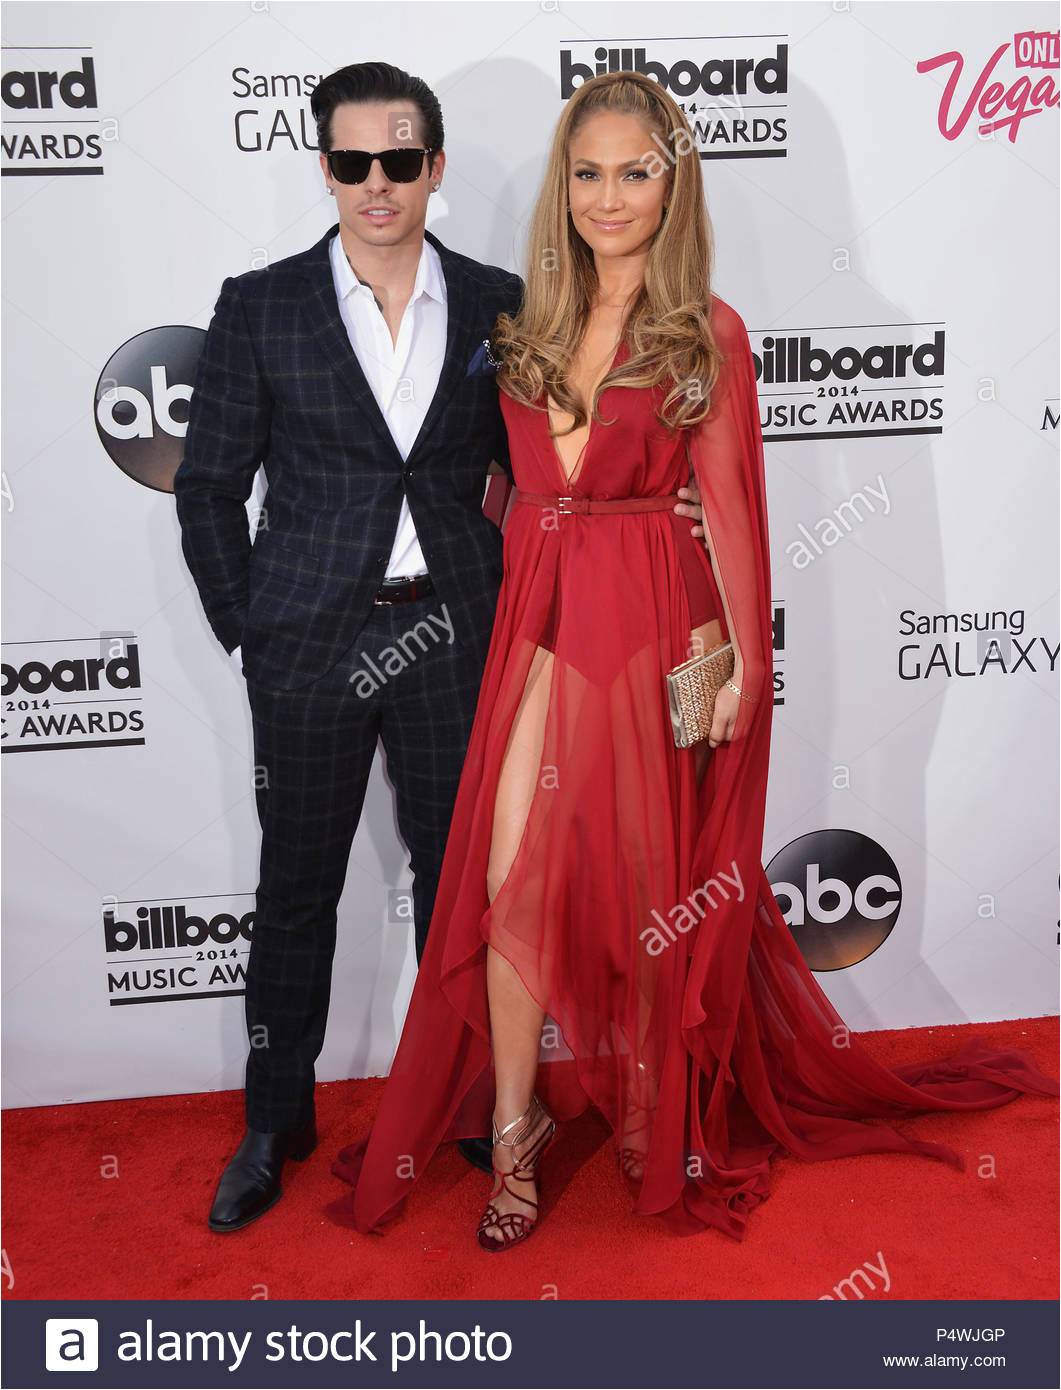 jennifer lopez und casper 124 2014 billboard music awards im mgm grand arena in las